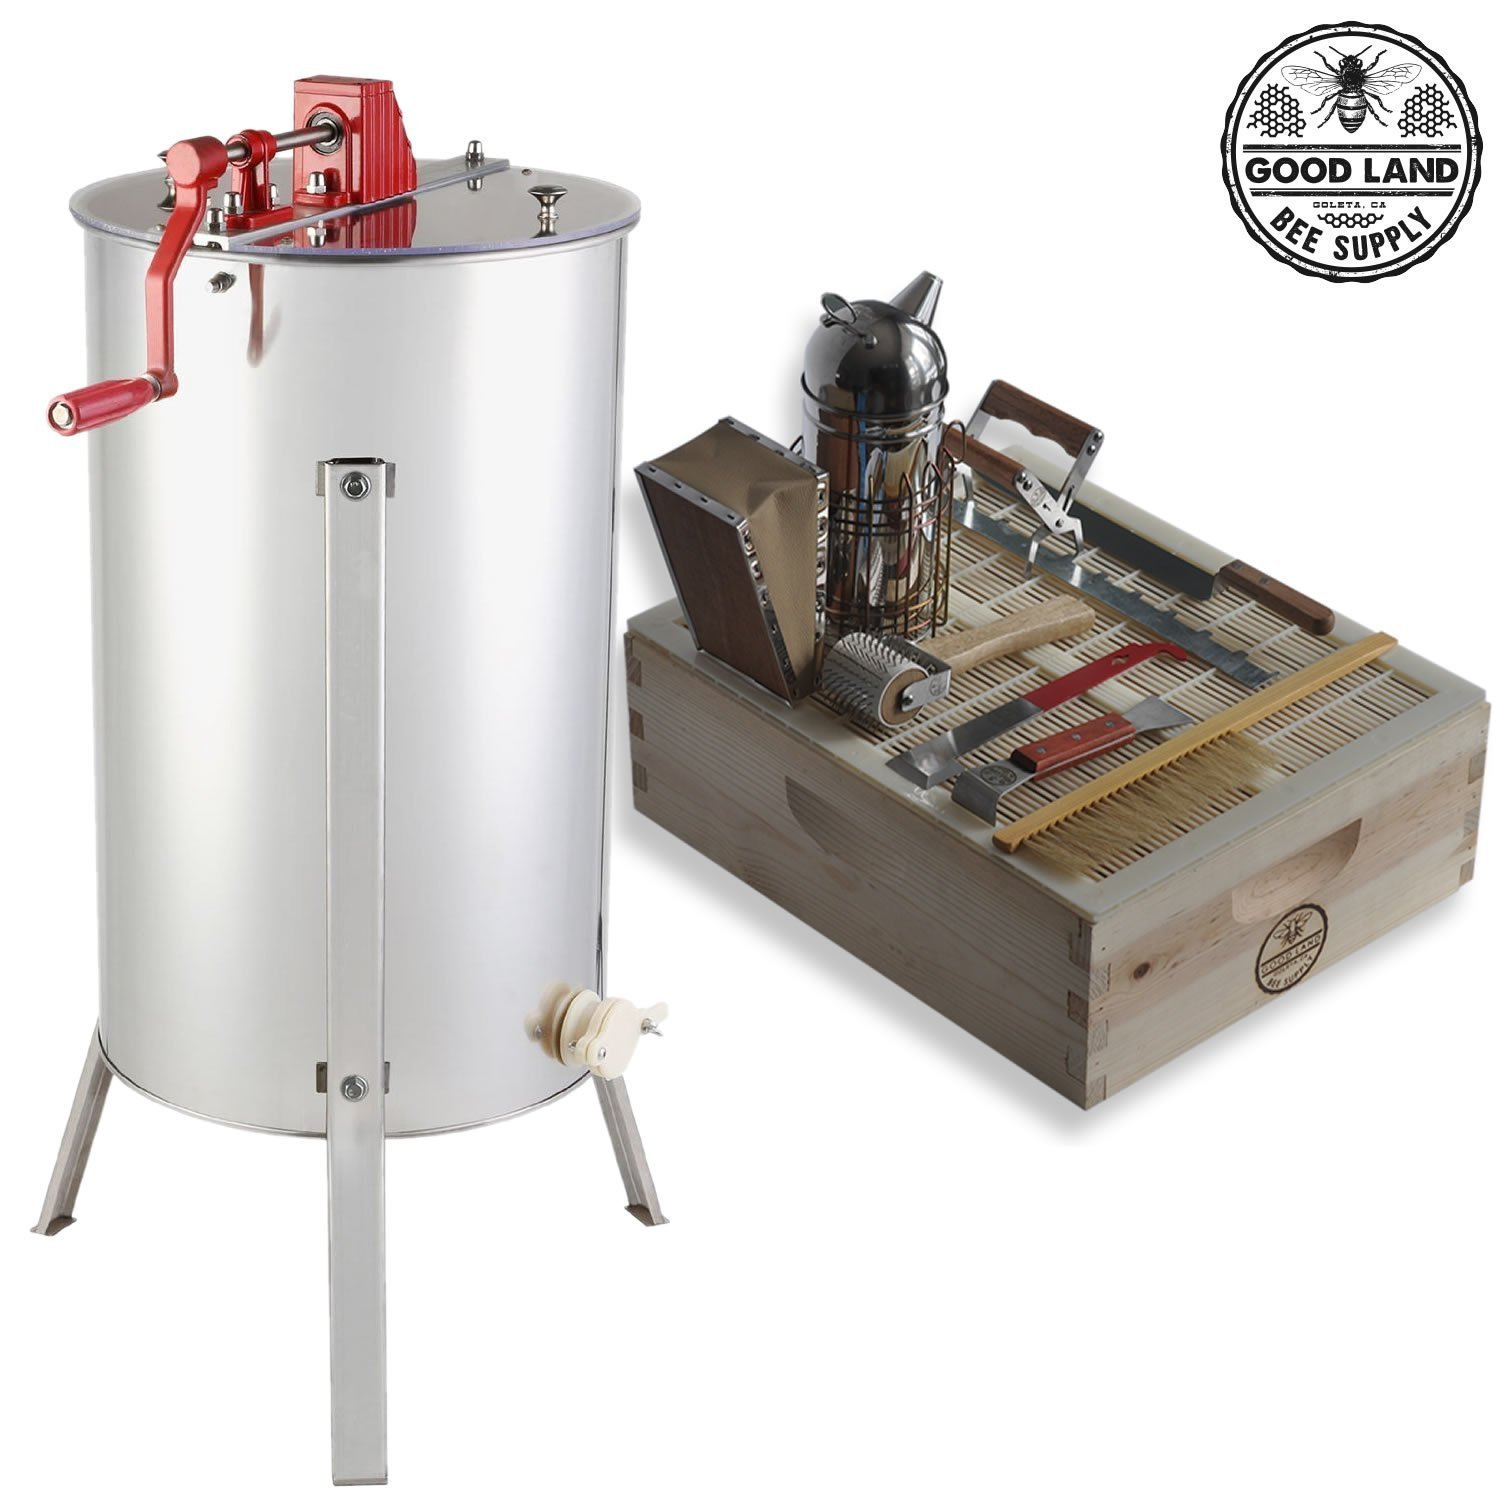 8. Goodland Bee Supply 2 Frame Honey Extractor